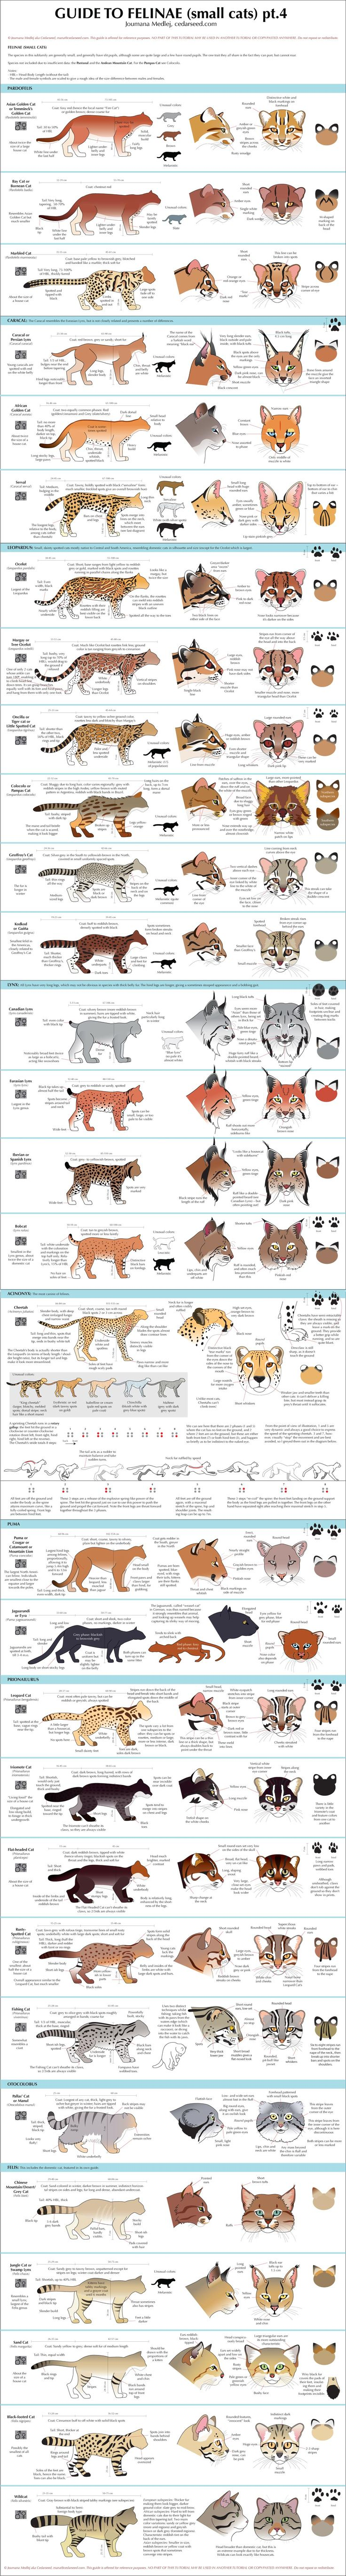 Guide to draw Cats of all sizes.